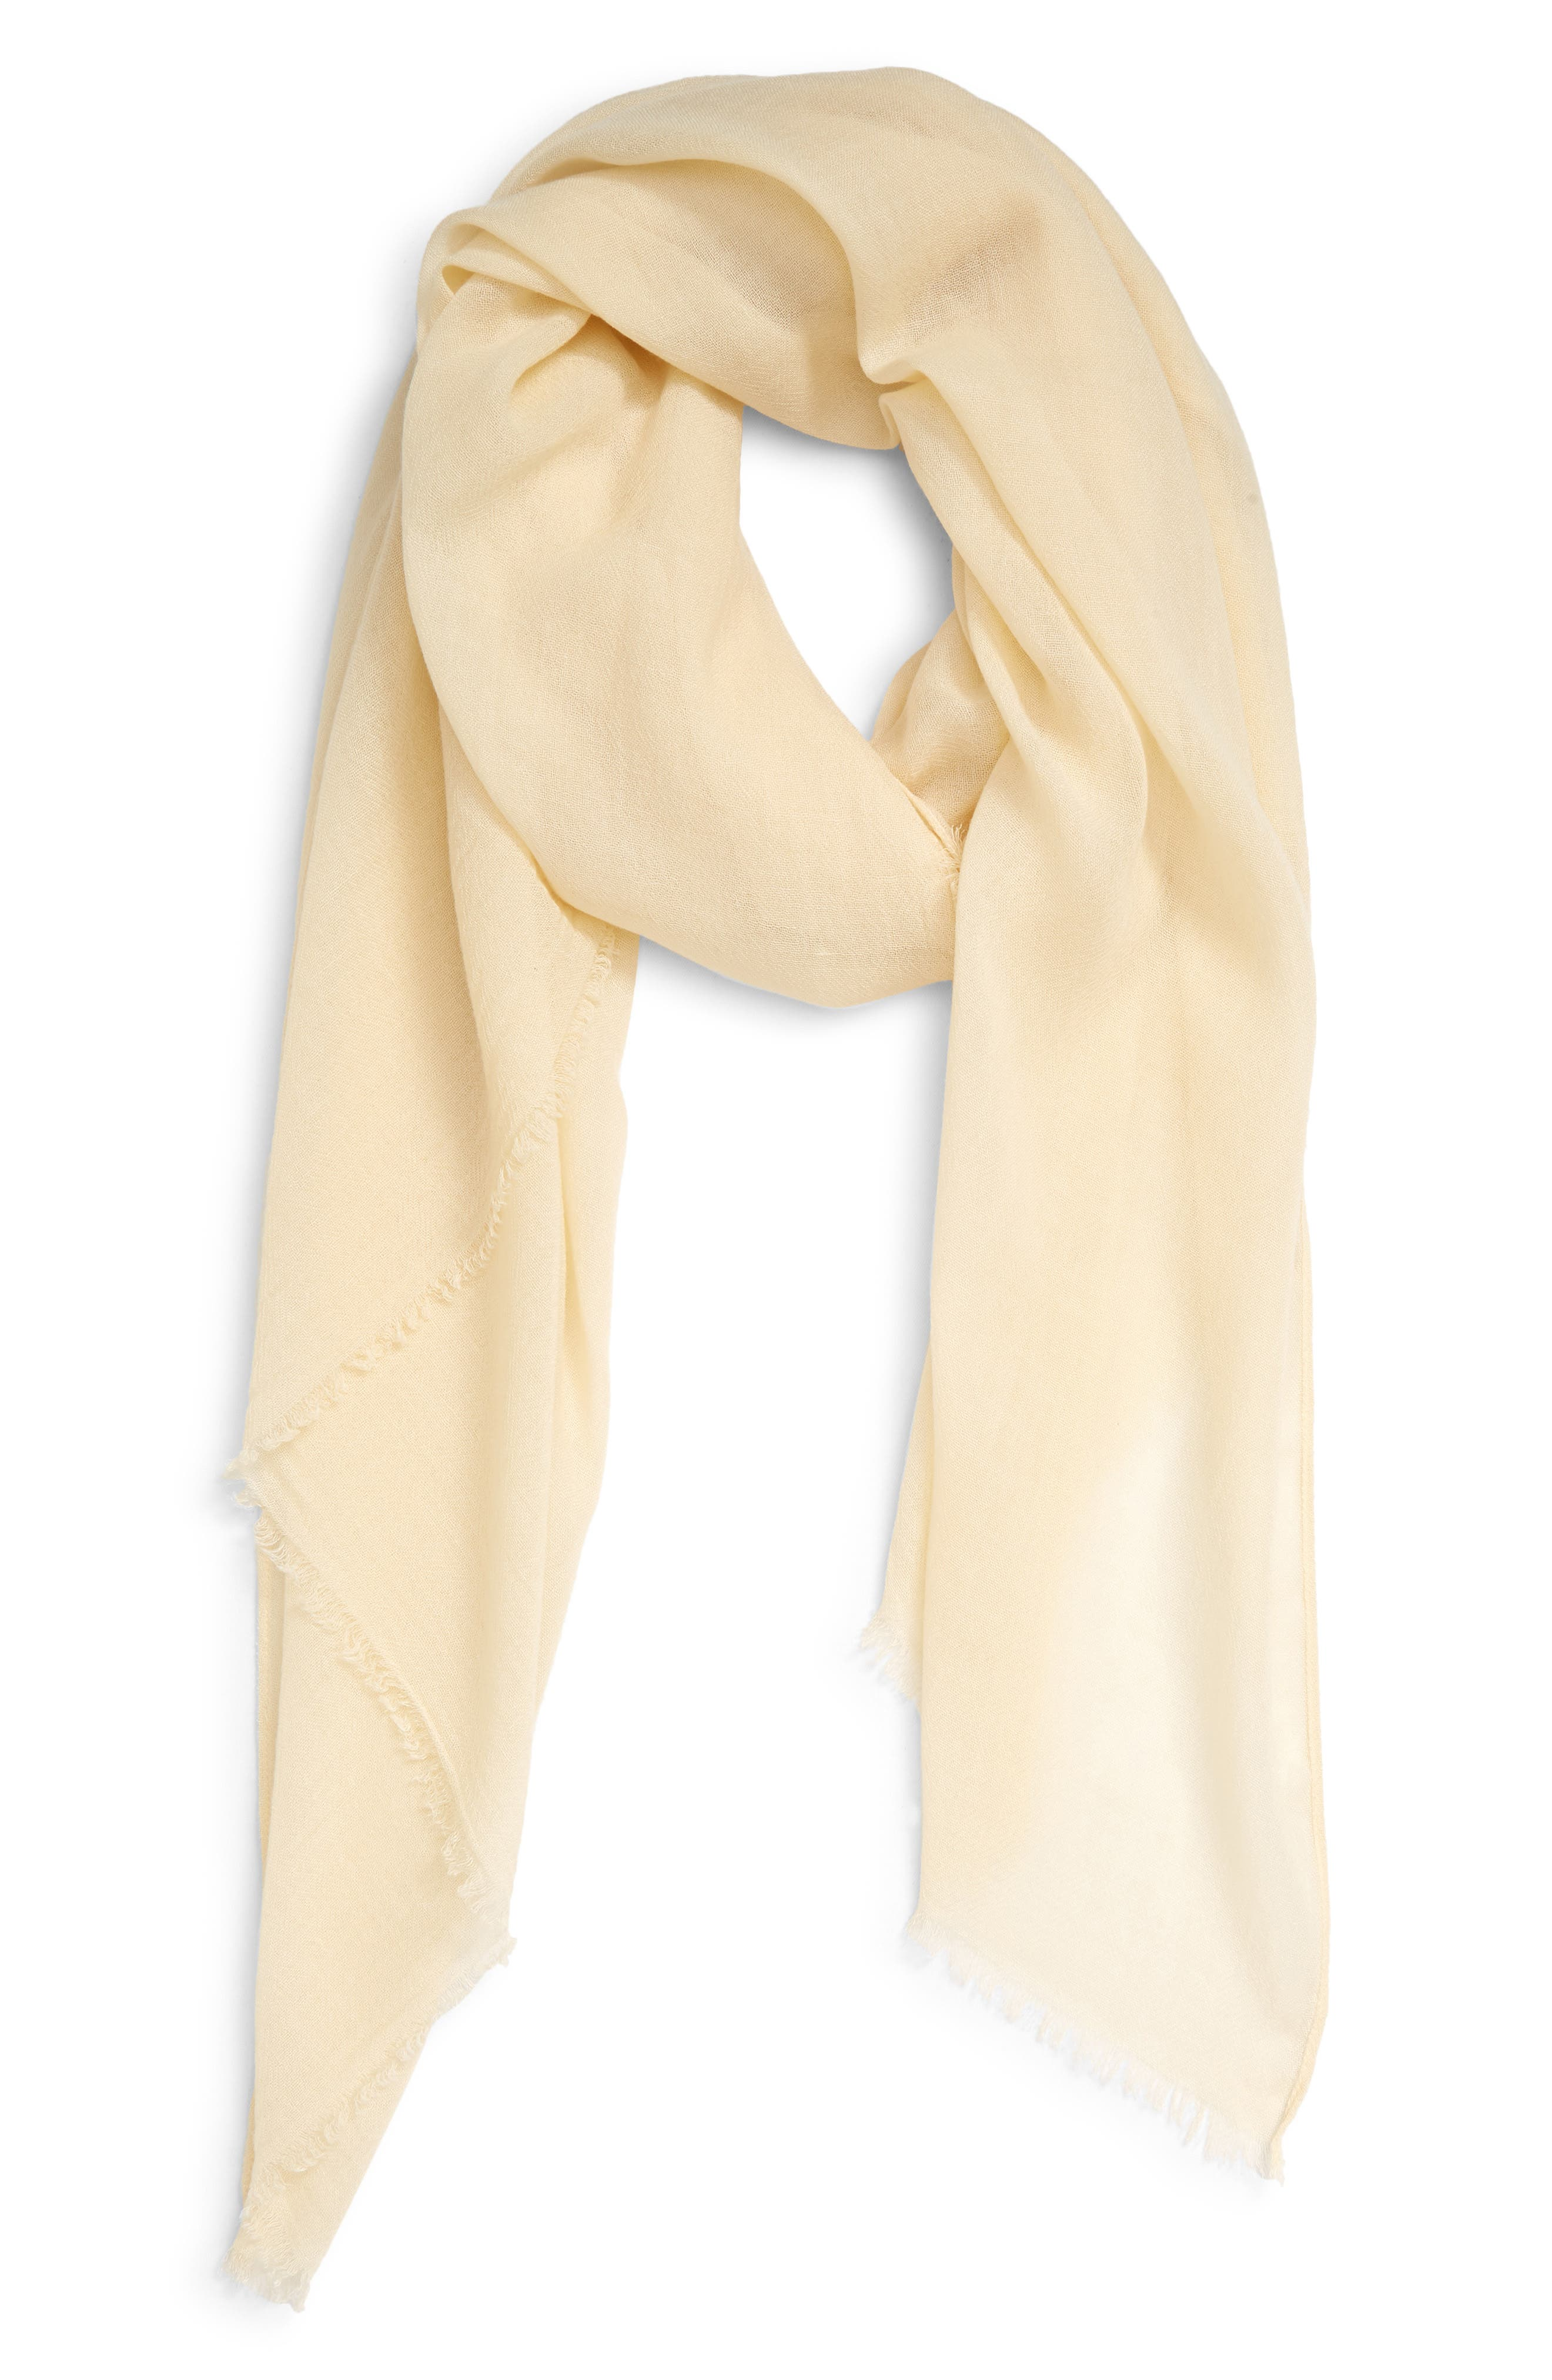 This essential feather-light scarf features a pair-with-everything hue and fine fringed trim. When you buy Treasure & Bond, Nordstrom will donate 2.5% of net sales to organizations that work to empower youth. Style Name: Treasure & Bond Scarf. Style Number: 6017717. Available in stores.